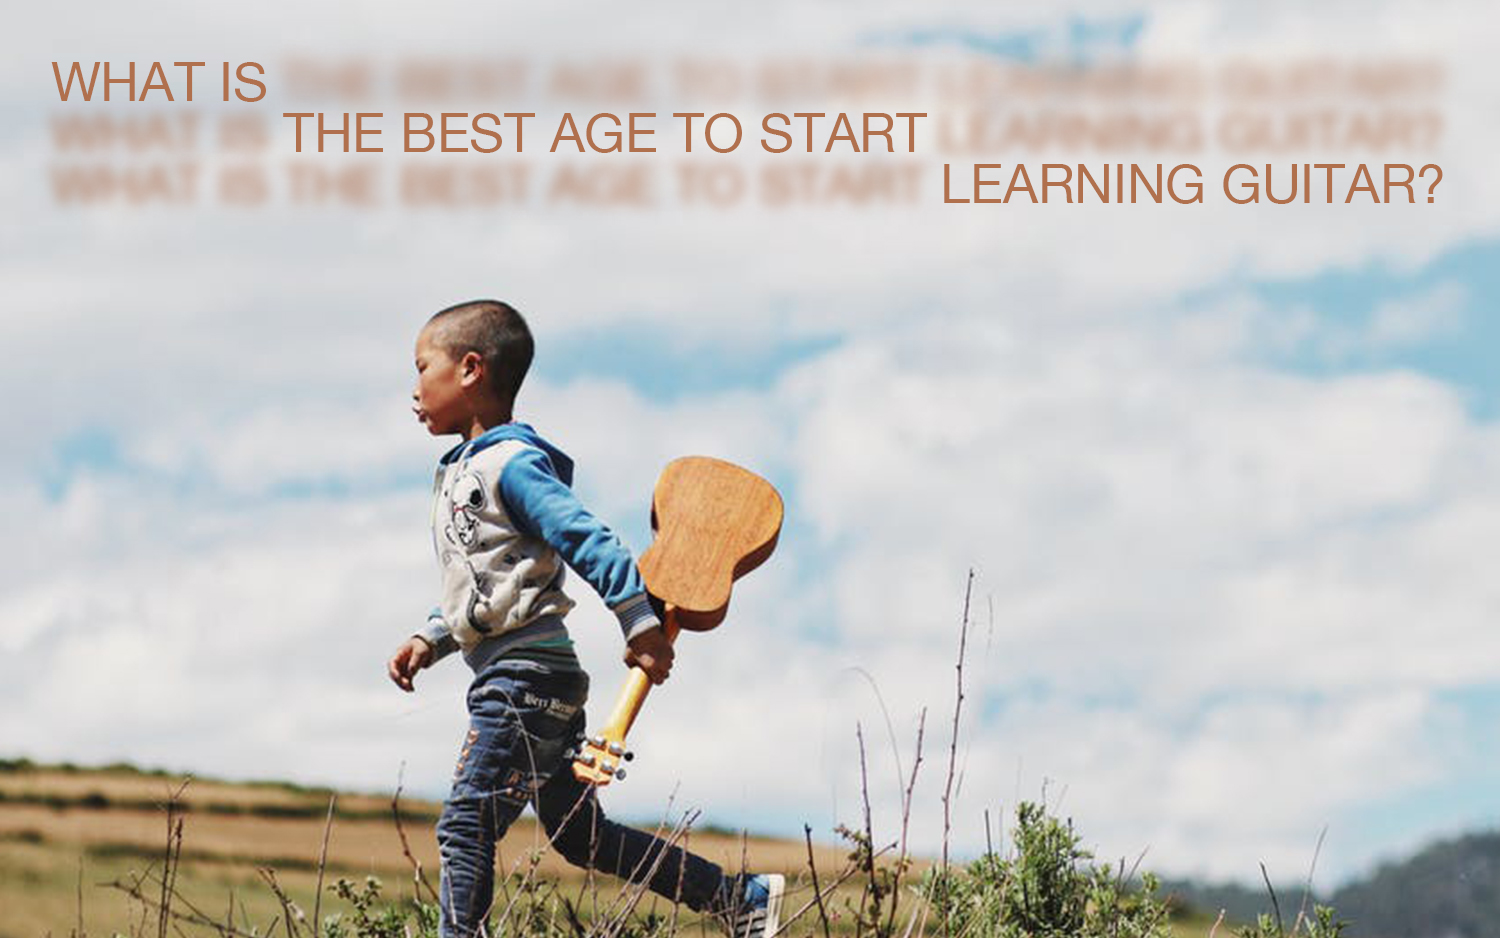 What is the Best Age to Start Learning Guitar?